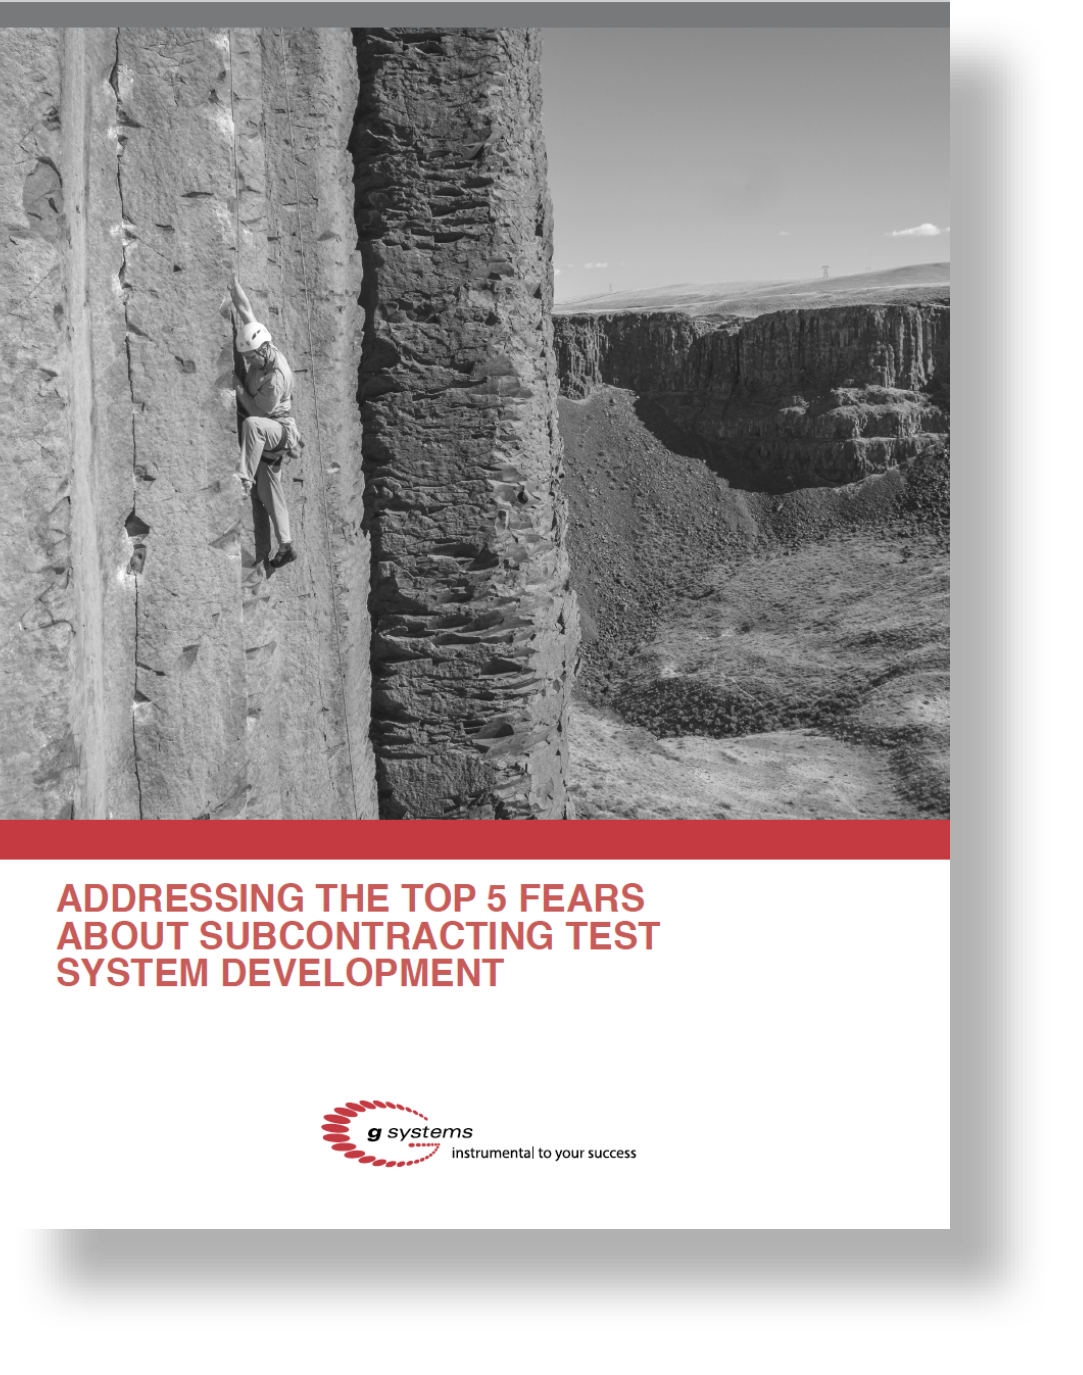 5 fears of subcontracting test system development